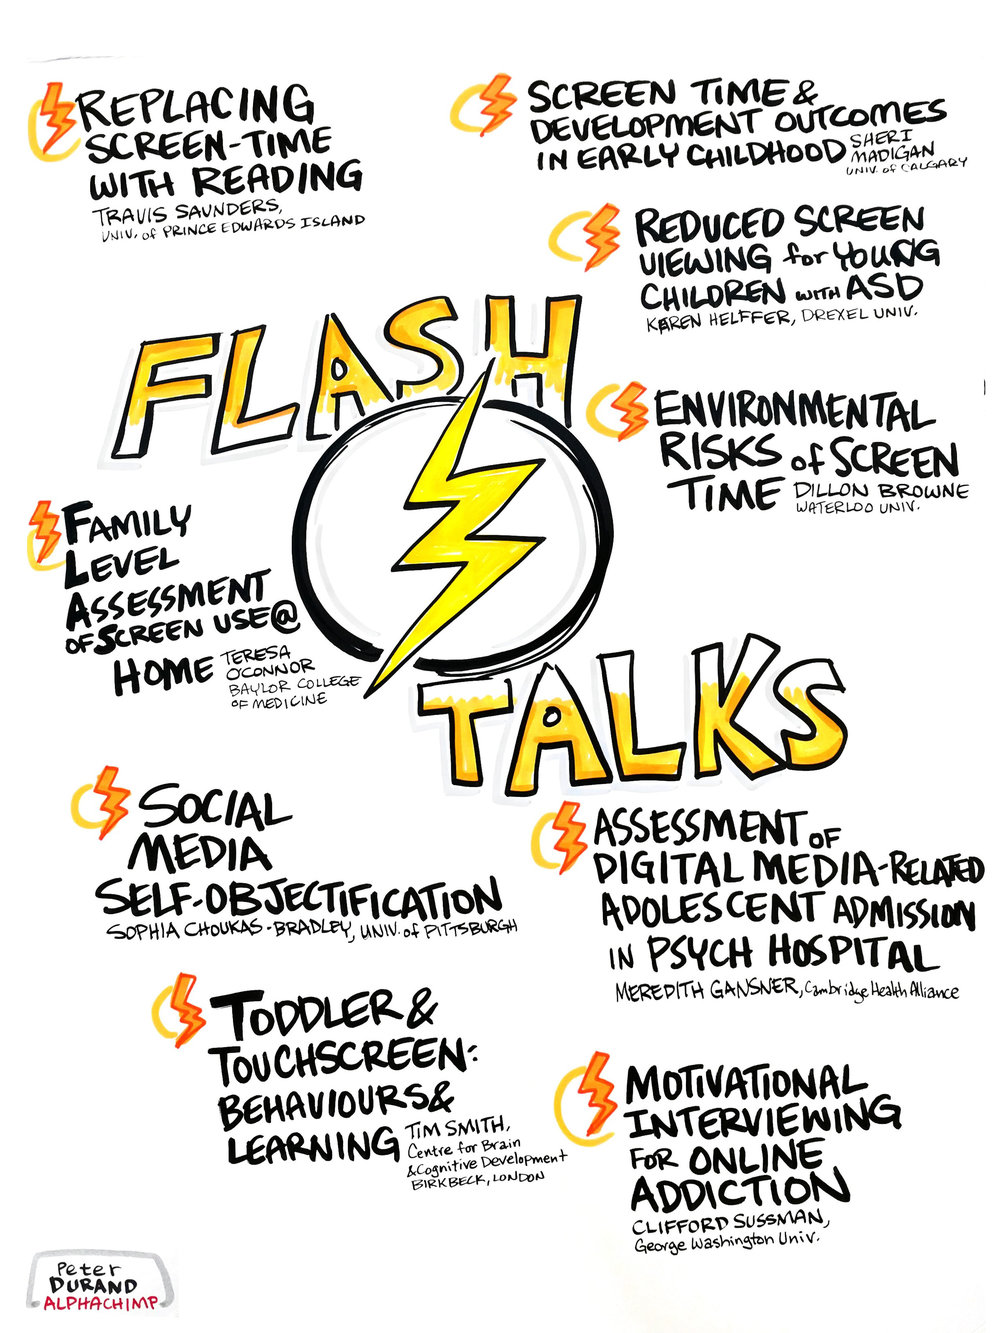 FLASH TALKS AND POSTER SESSION 1